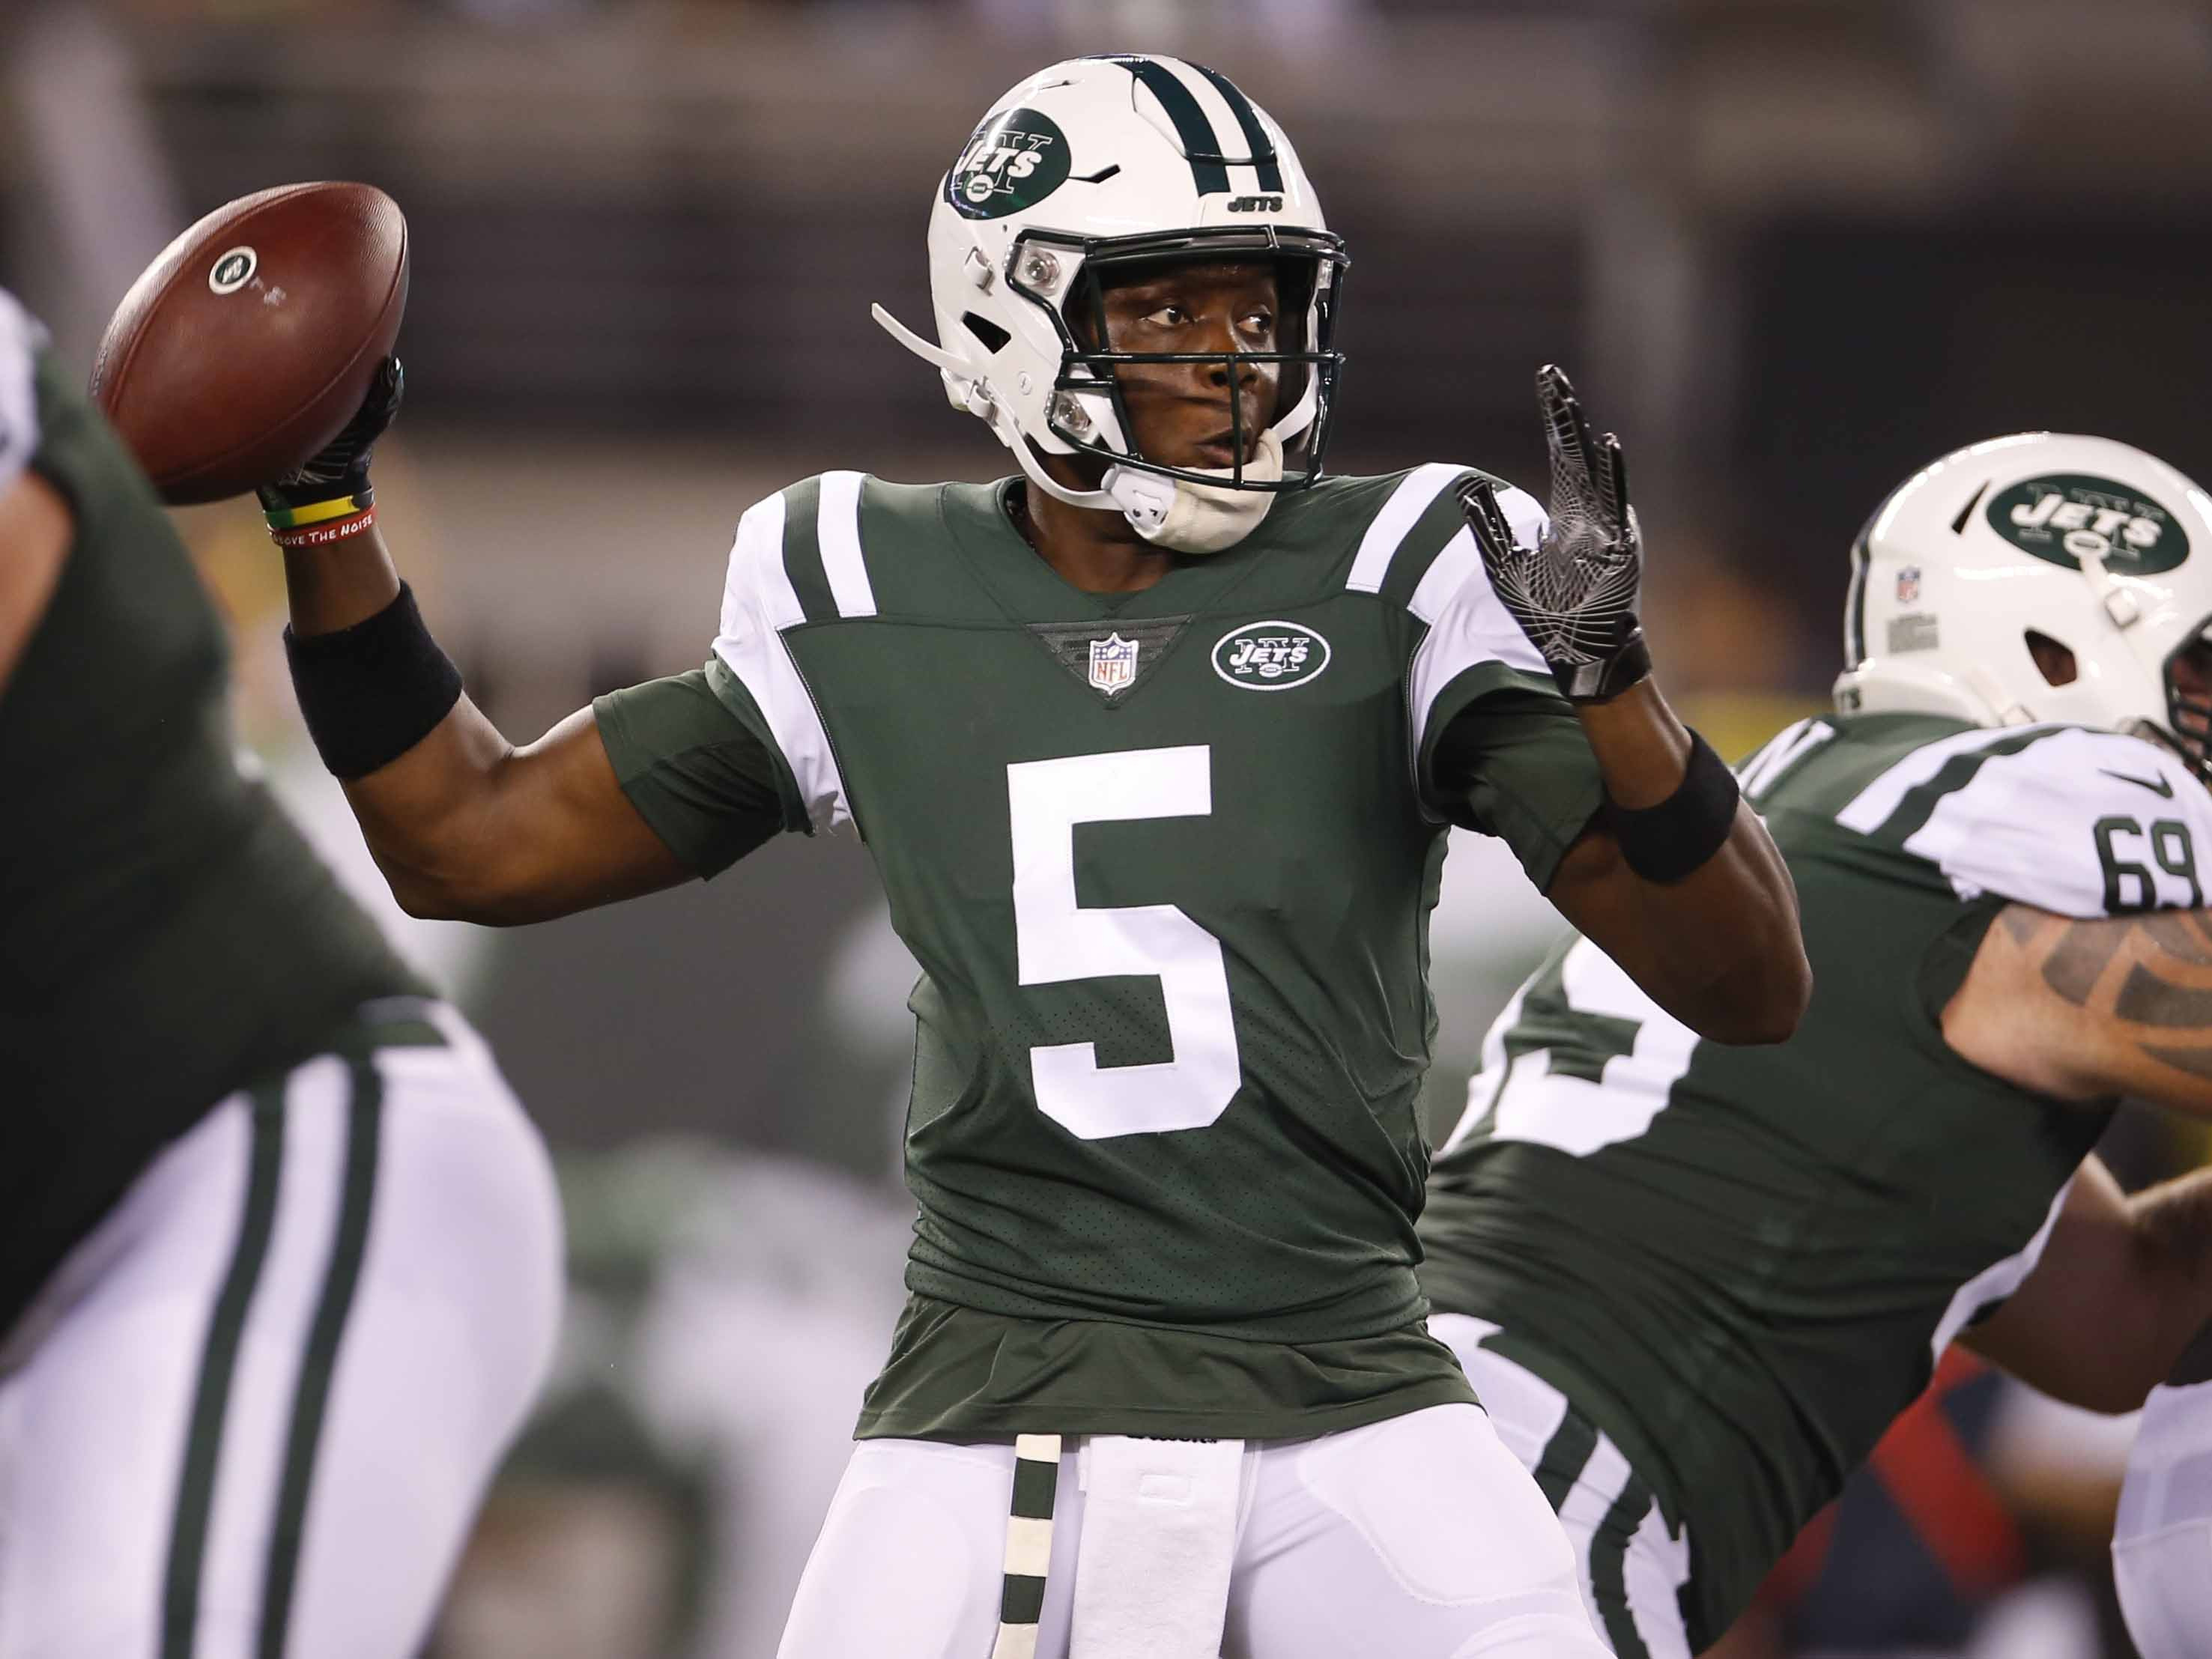 a416aa0e Teddy Bridgewater's back! QB shines in Jets debut - NFL.com